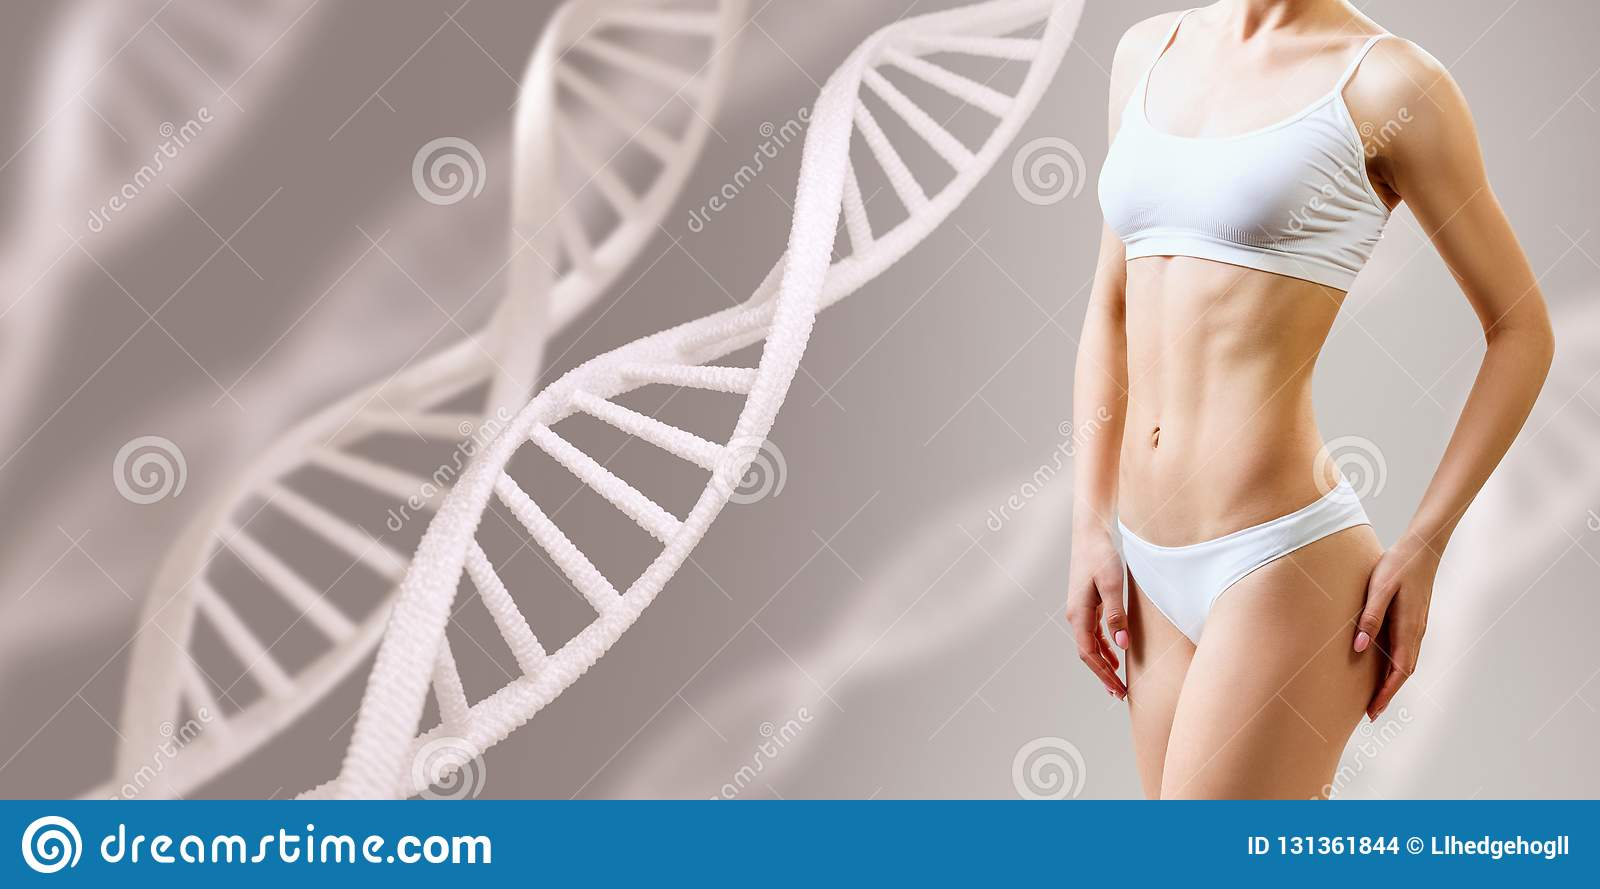 Perfect sporty female body near DNA stems. Good metabolism concept.